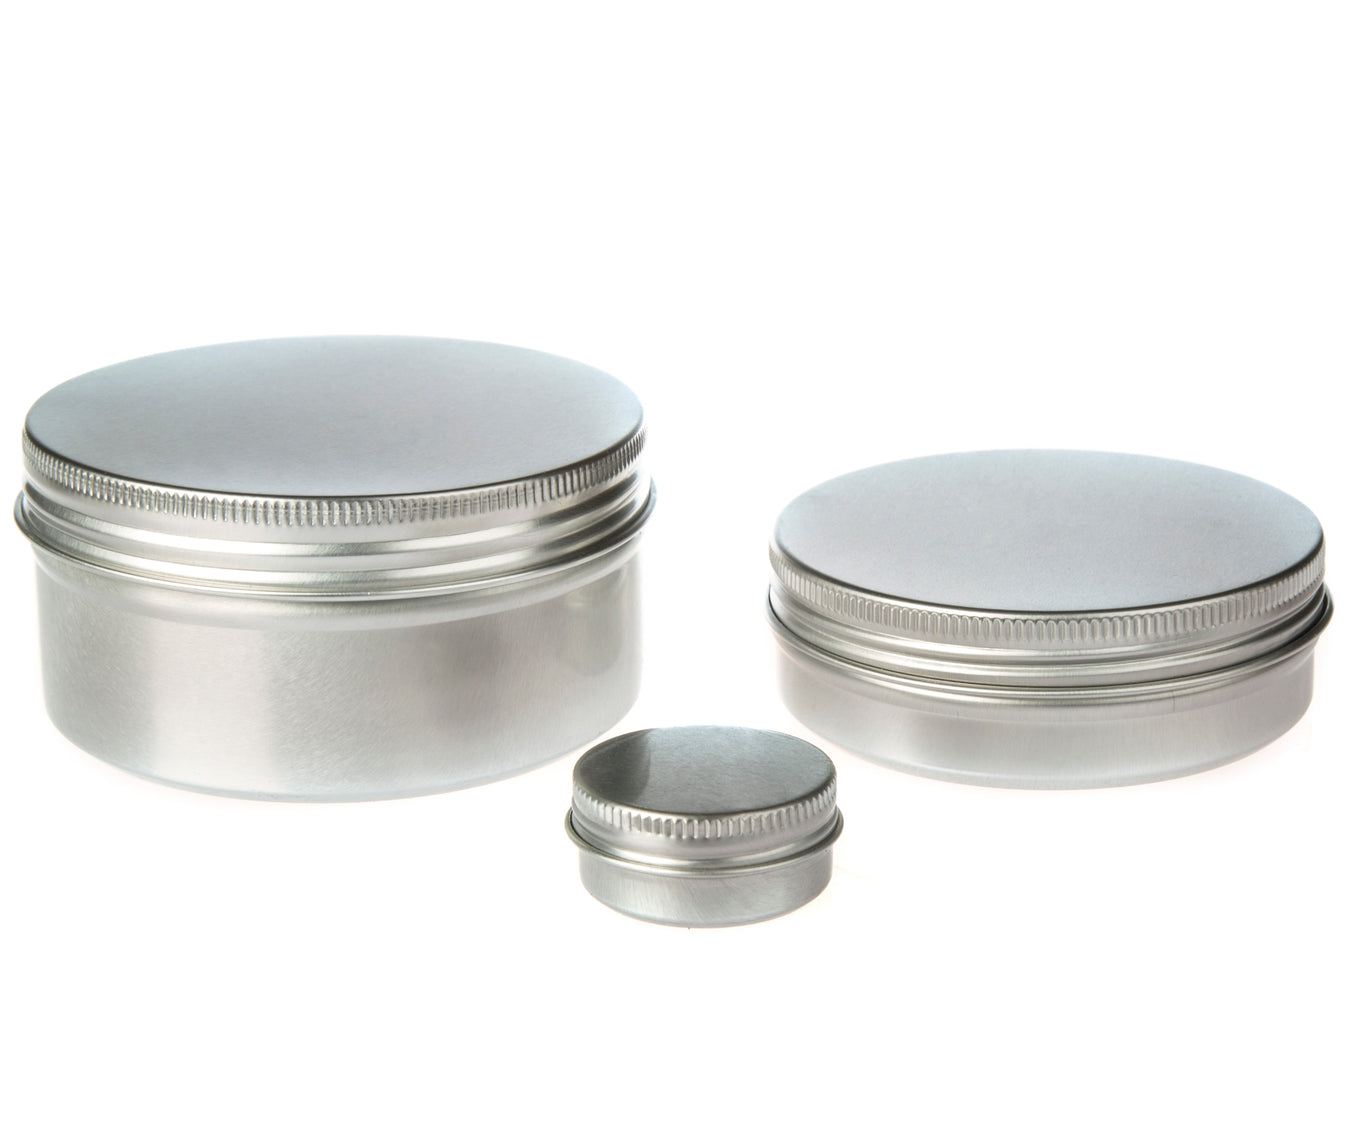 Confectionery Tins